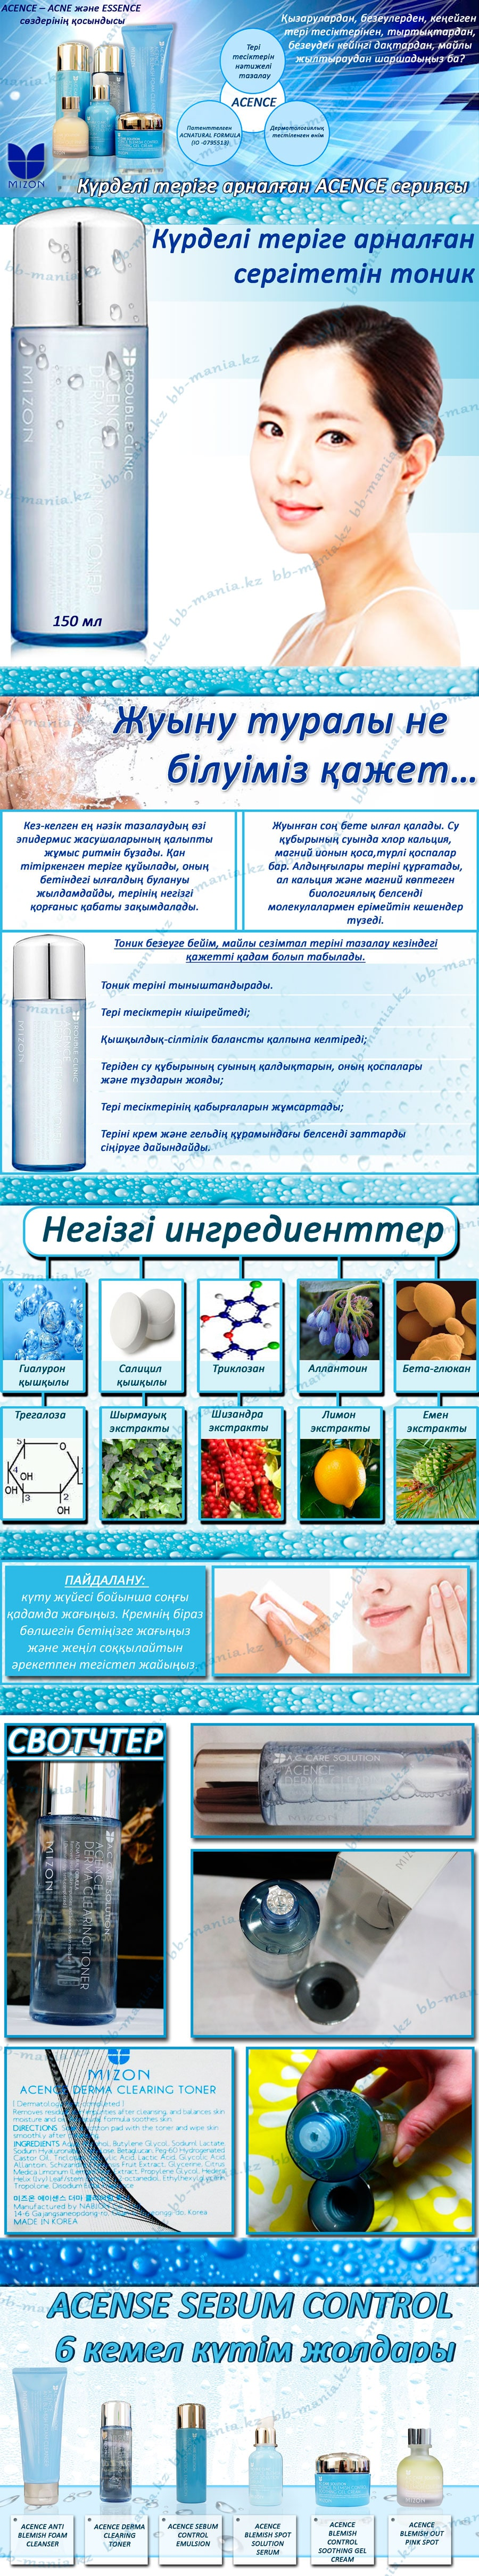 Acence-Derma-Clearing-Toner-кз-min